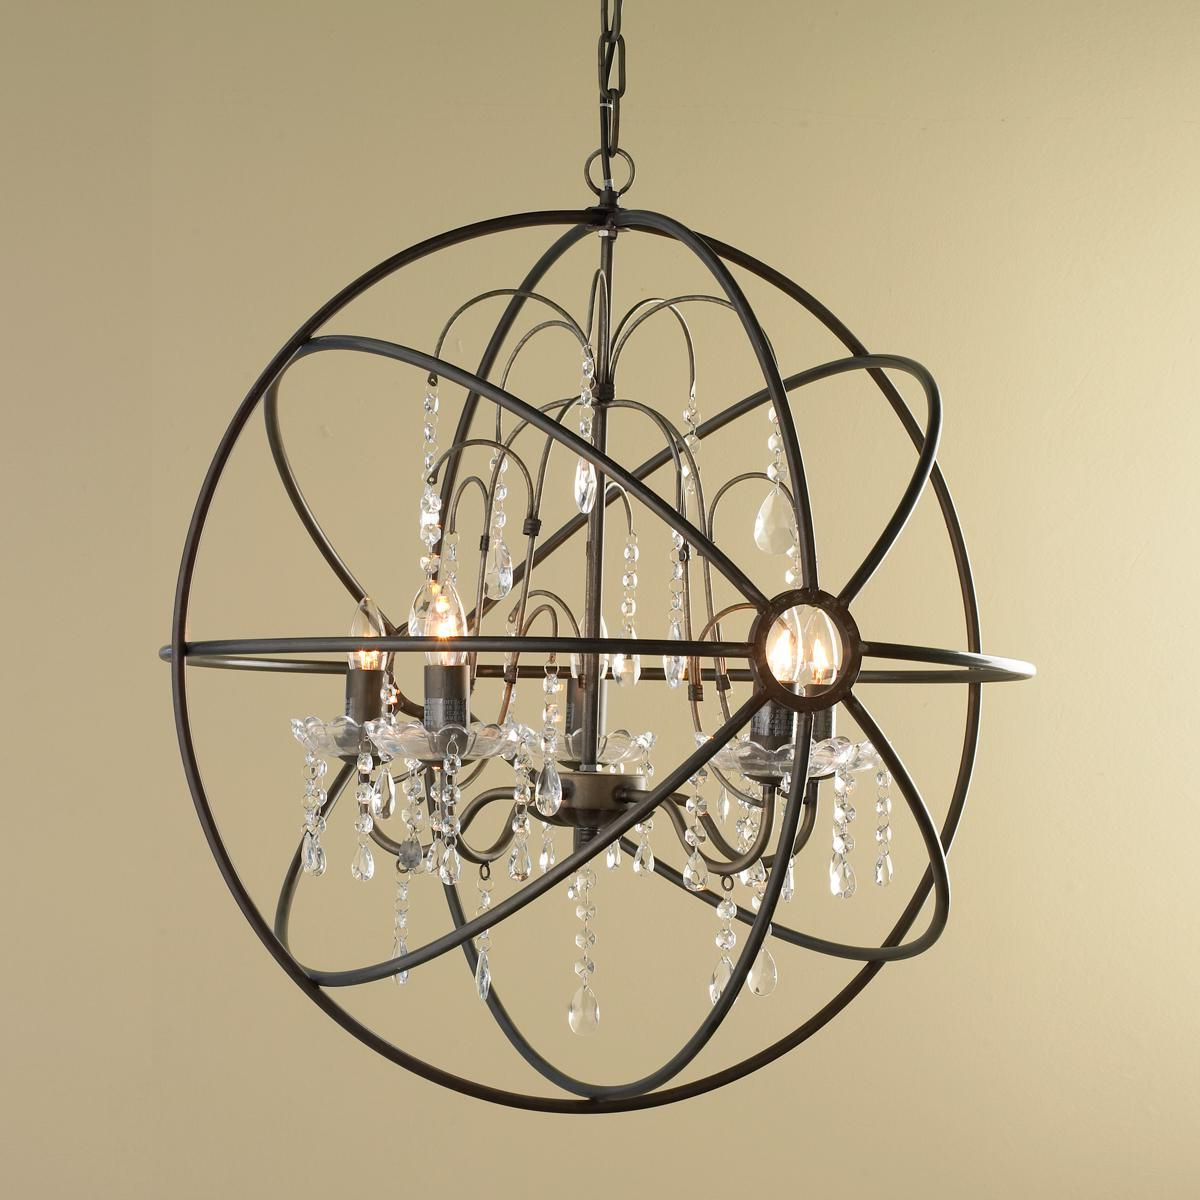 Widely Used Alden 3 Light Single Globe Pendants In Crystal And Metal Orb Chandelier (View 20 of 20)